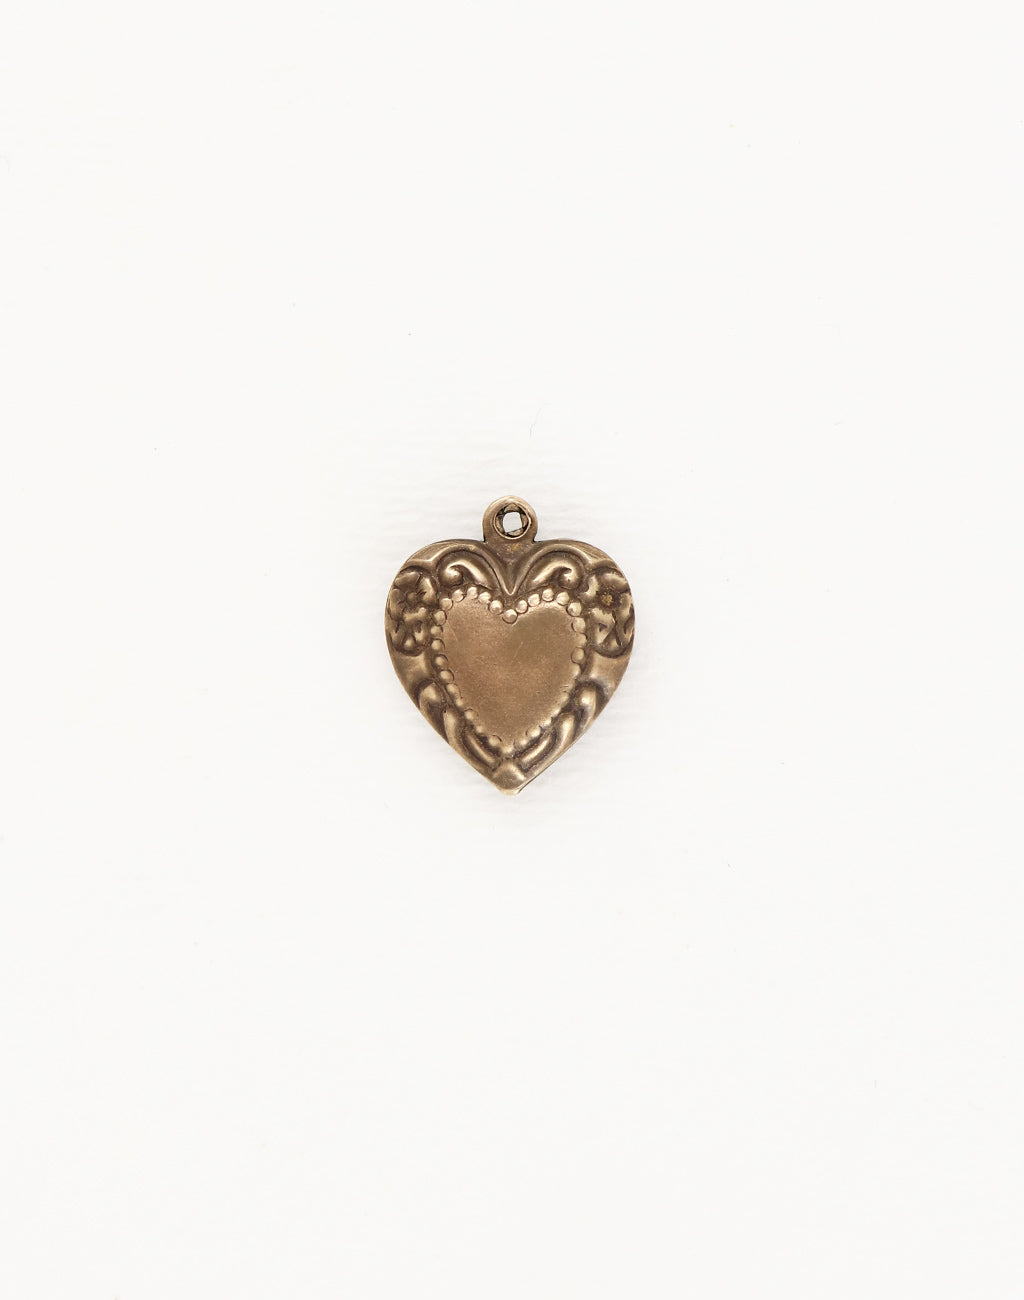 Cherished Heart, 18x16mm, (1pc)